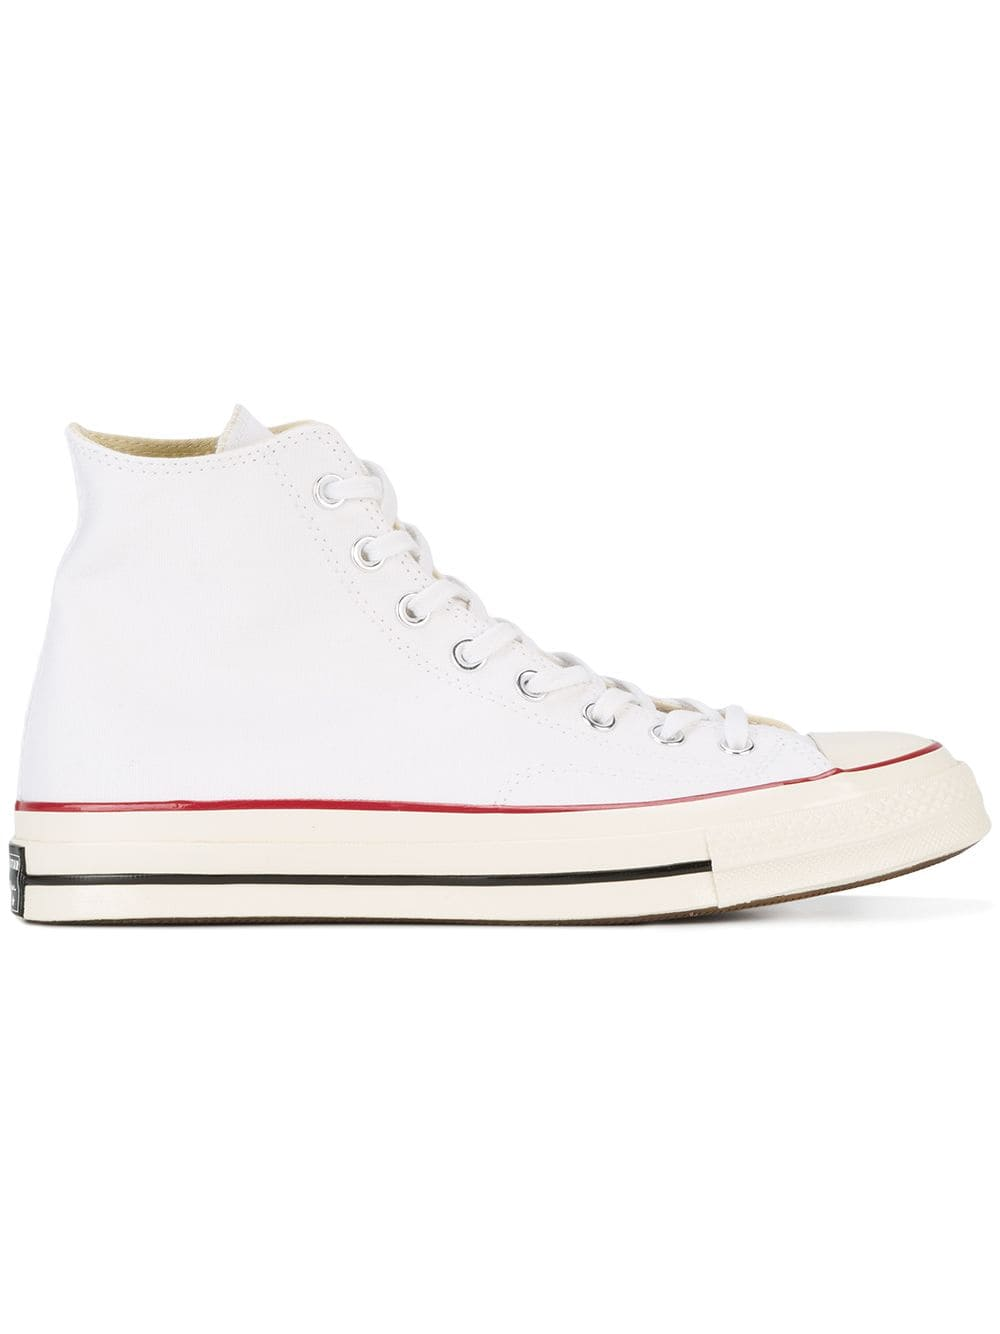 Converse White All Star Hi 70's Trainers in 2019 | Products